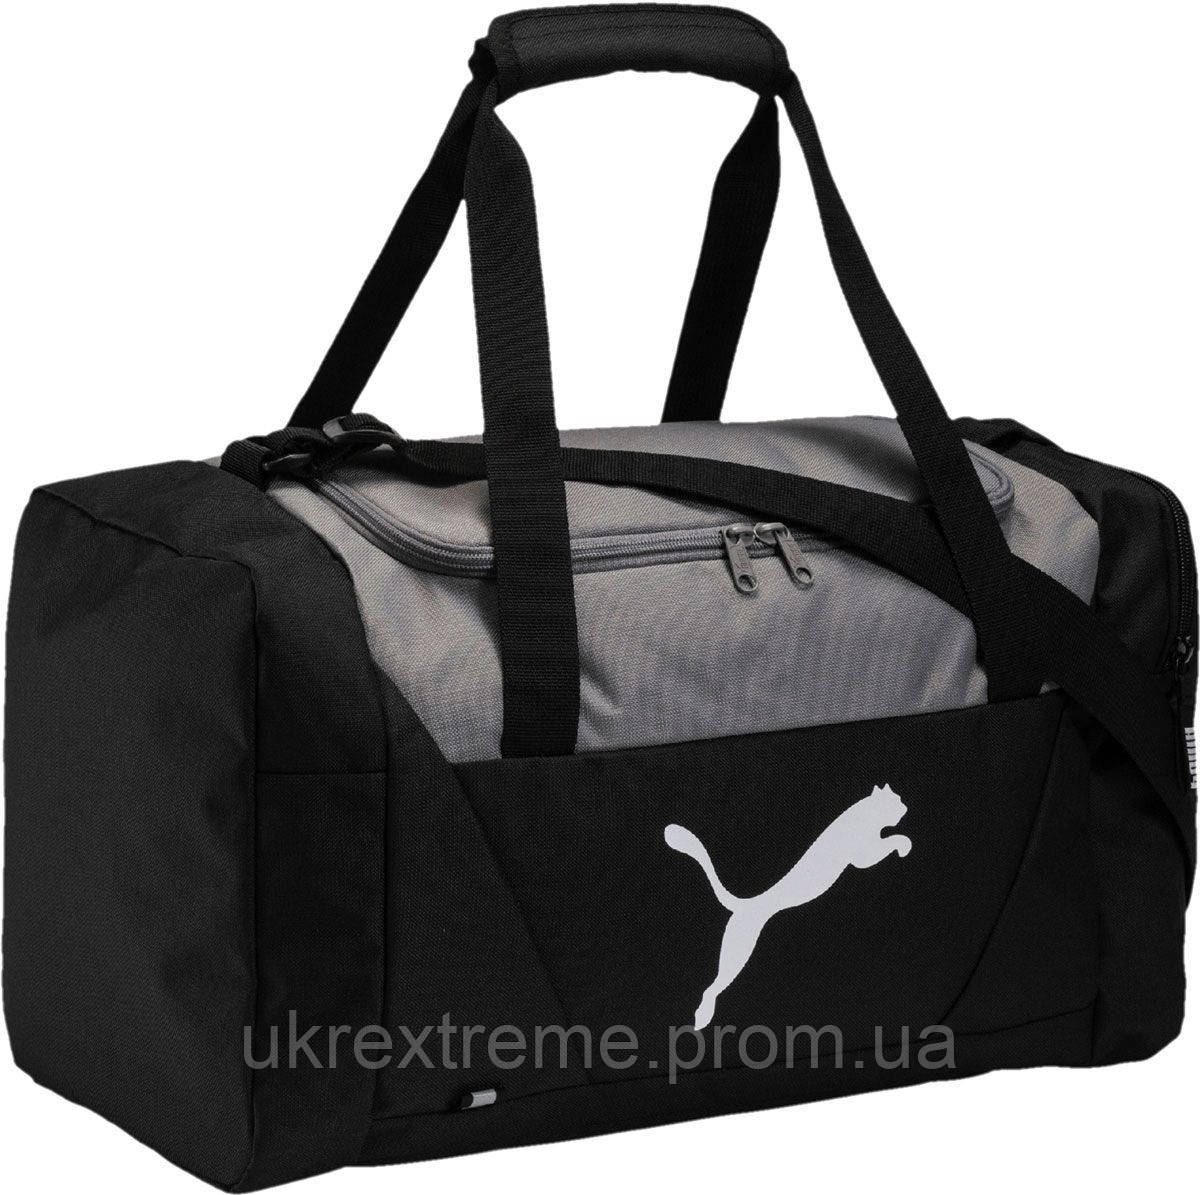 03c529dd Сумка Puma Fundamentals Sports Bag S (ОРИГИНАЛ) X — в Категории ...